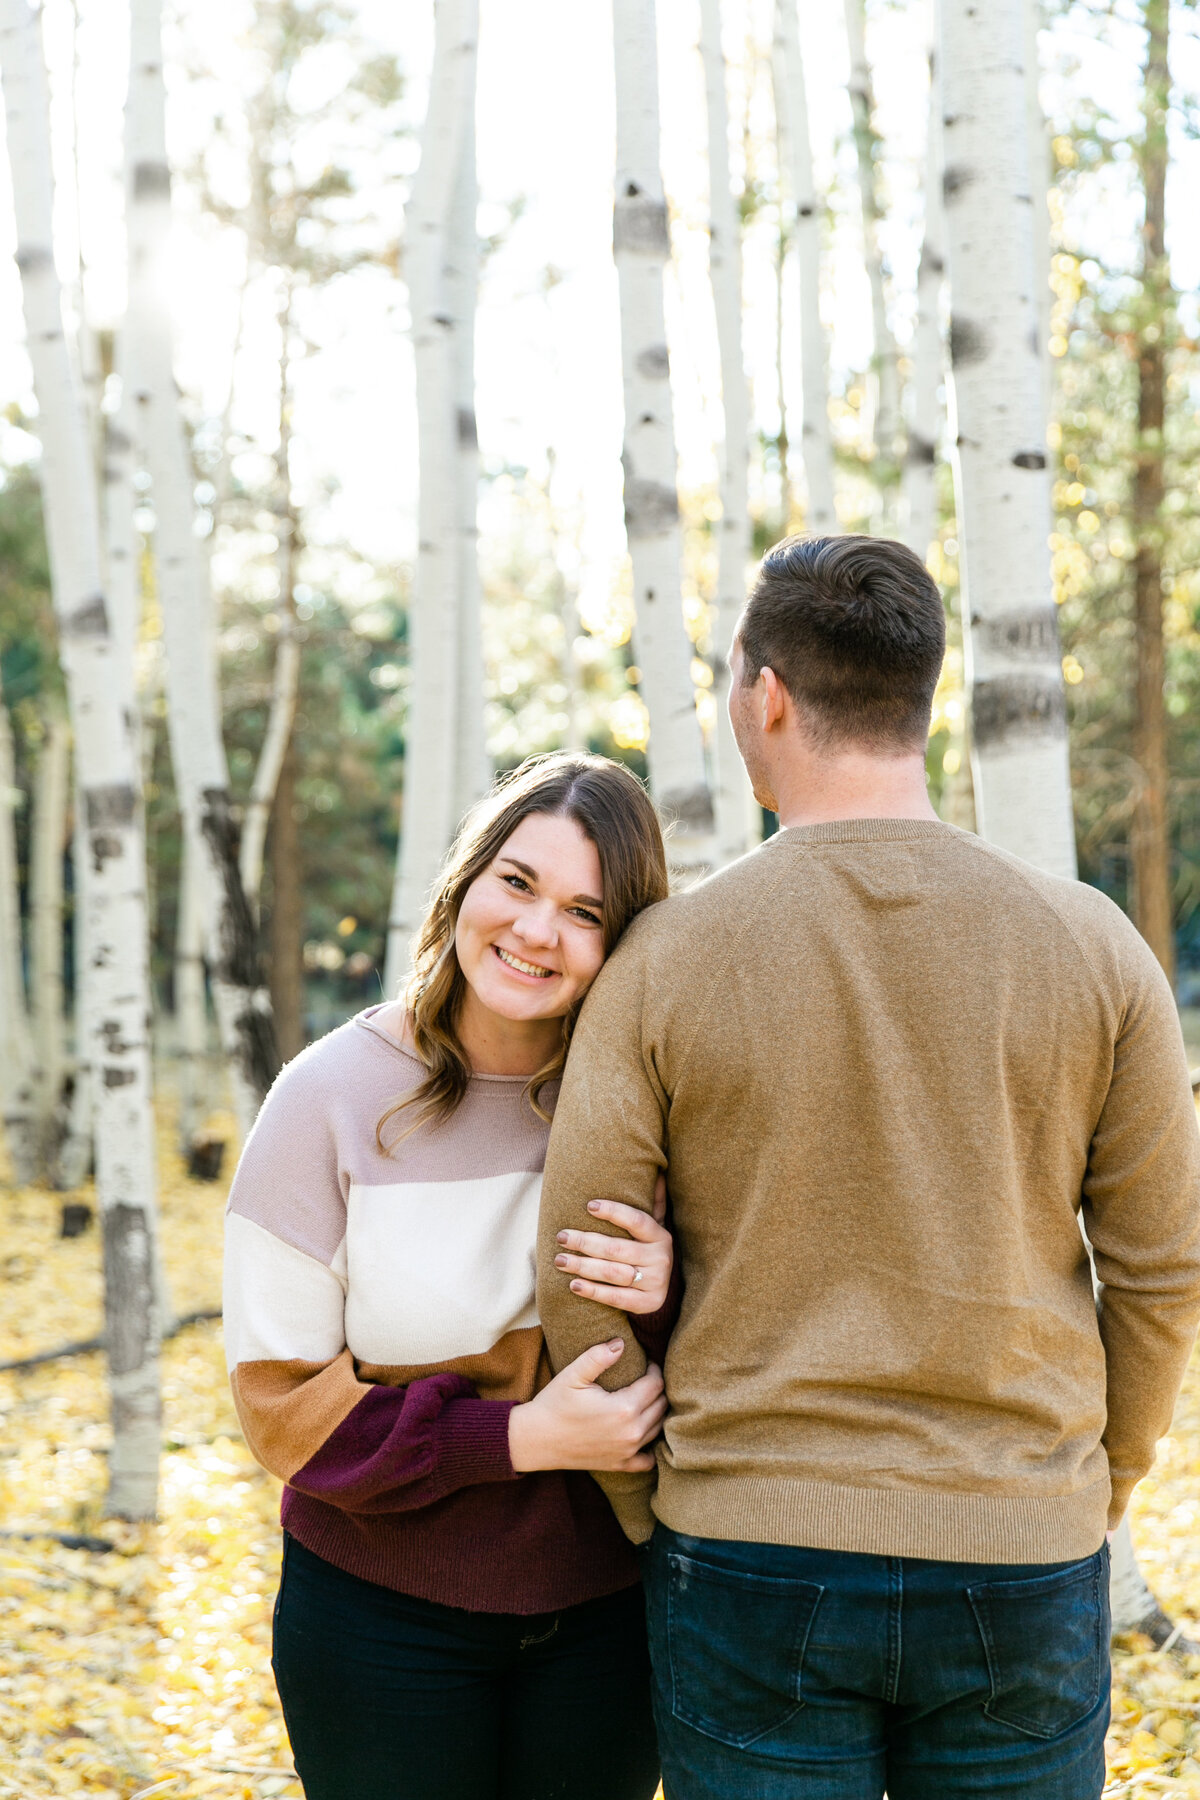 Karlie Colleen Photography - Flagstaff Arizona Engagement Photographer - Britt & Josh -95